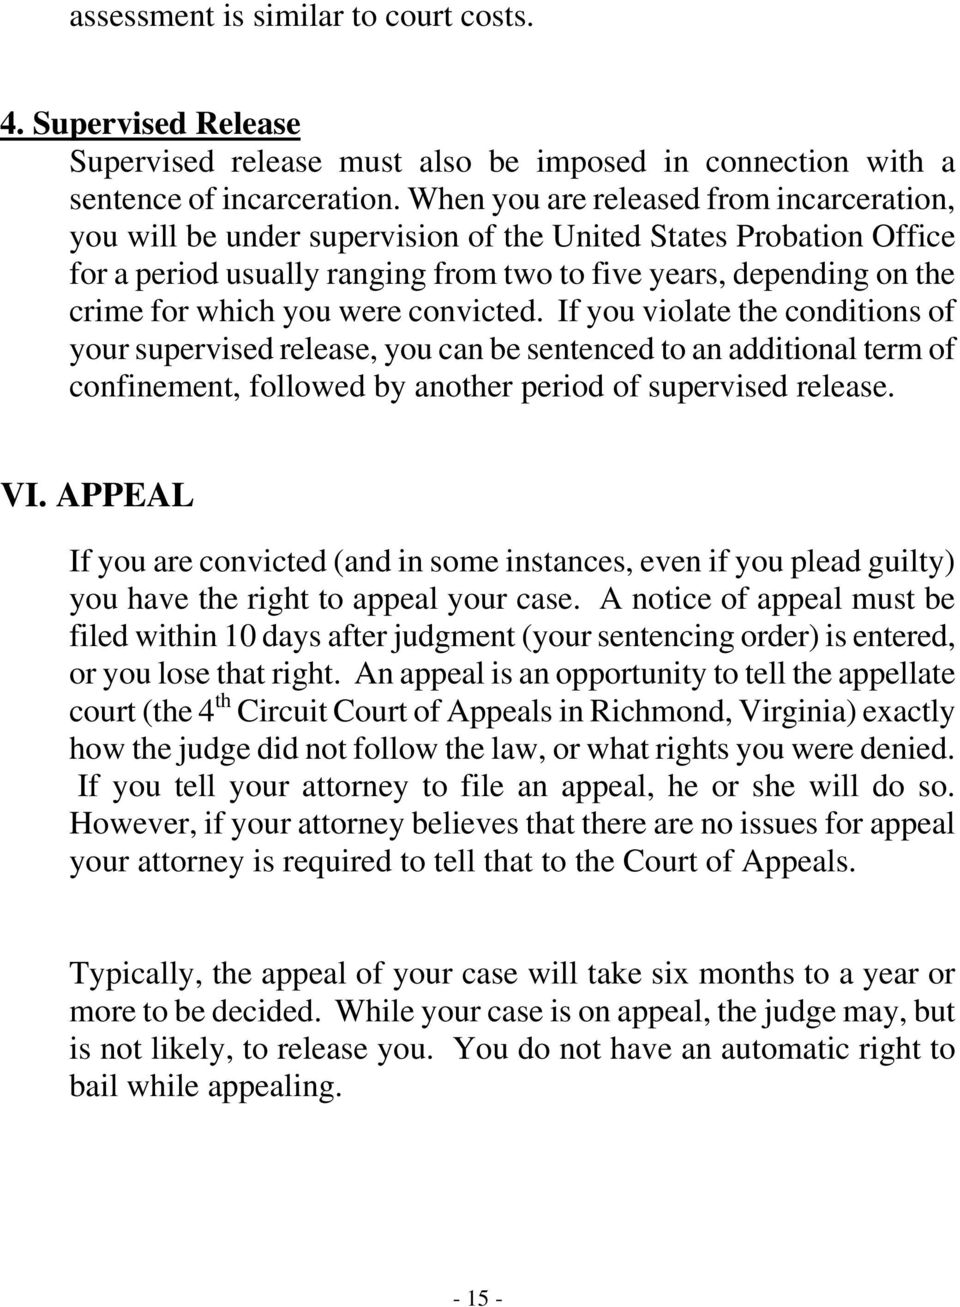 were convicted. If you violate the conditions of your supervised release, you can be sentenced to an additional term of confinement, followed by another period of supervised release. VI.